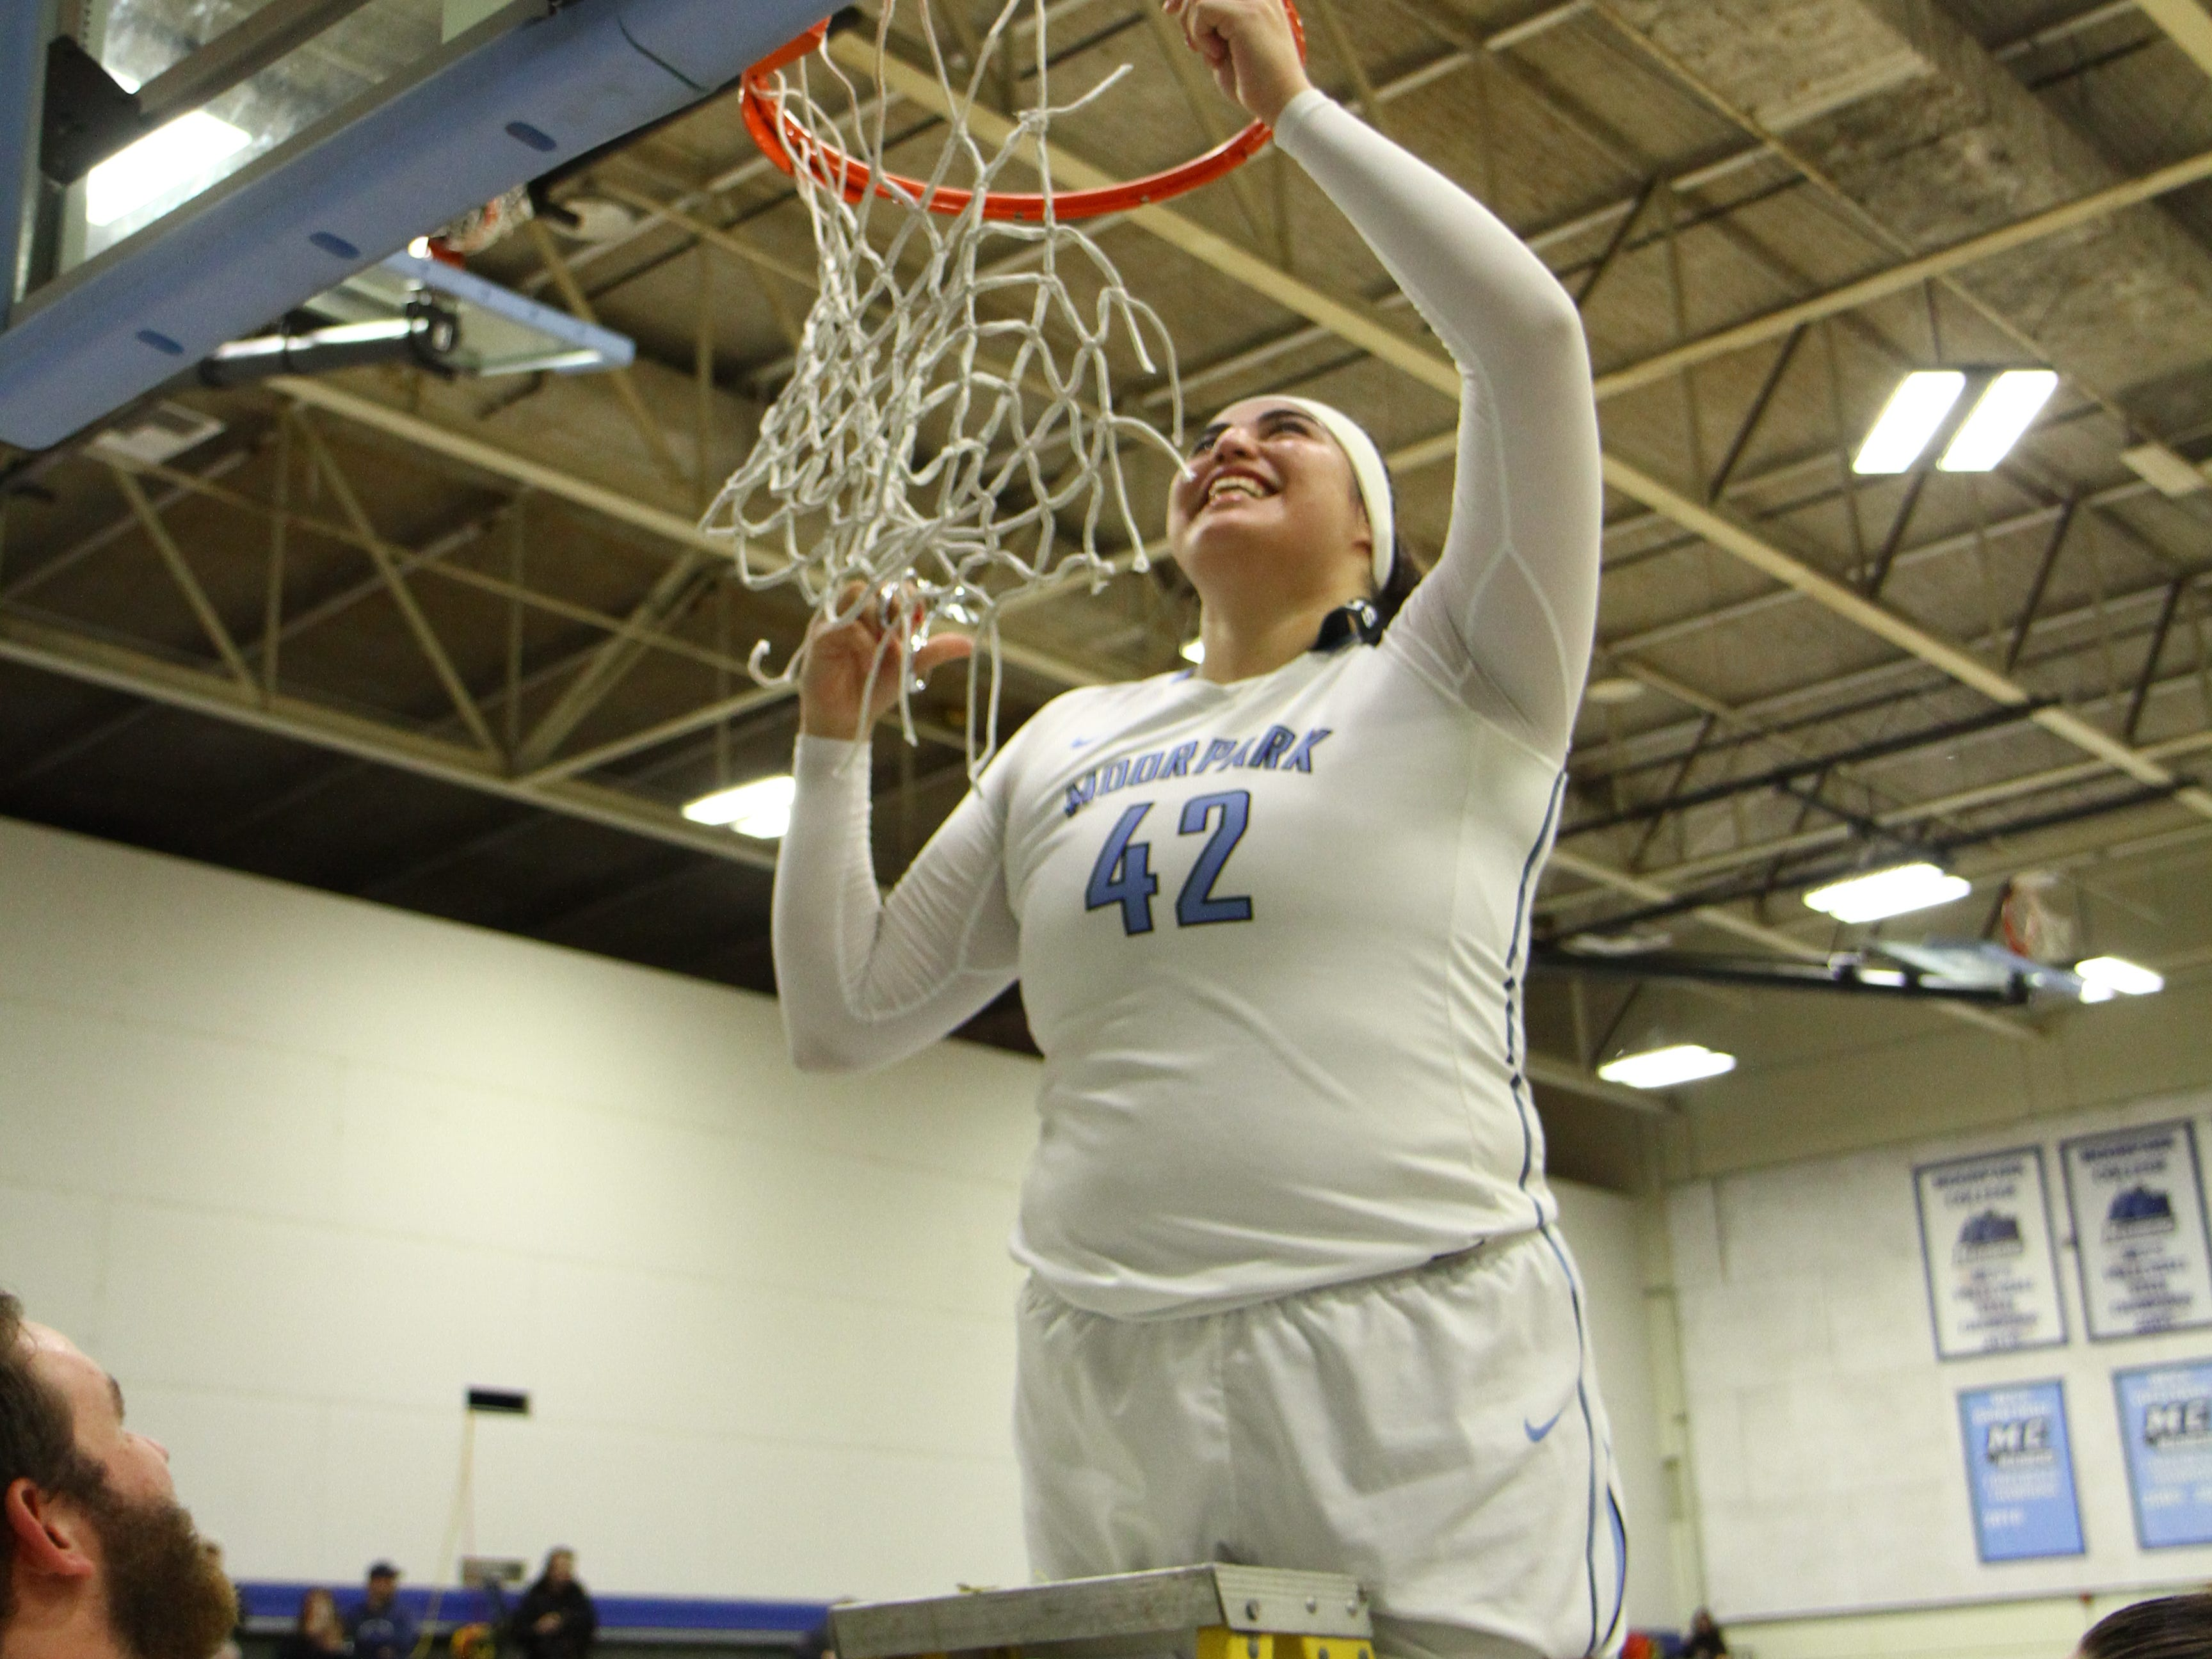 Sophomore Barbara Rangel cuts down the net after the Moorpark College women's basketball team's CCCAA Southern California regional final win over Glendale on Saturday night at Raider Pavilion.